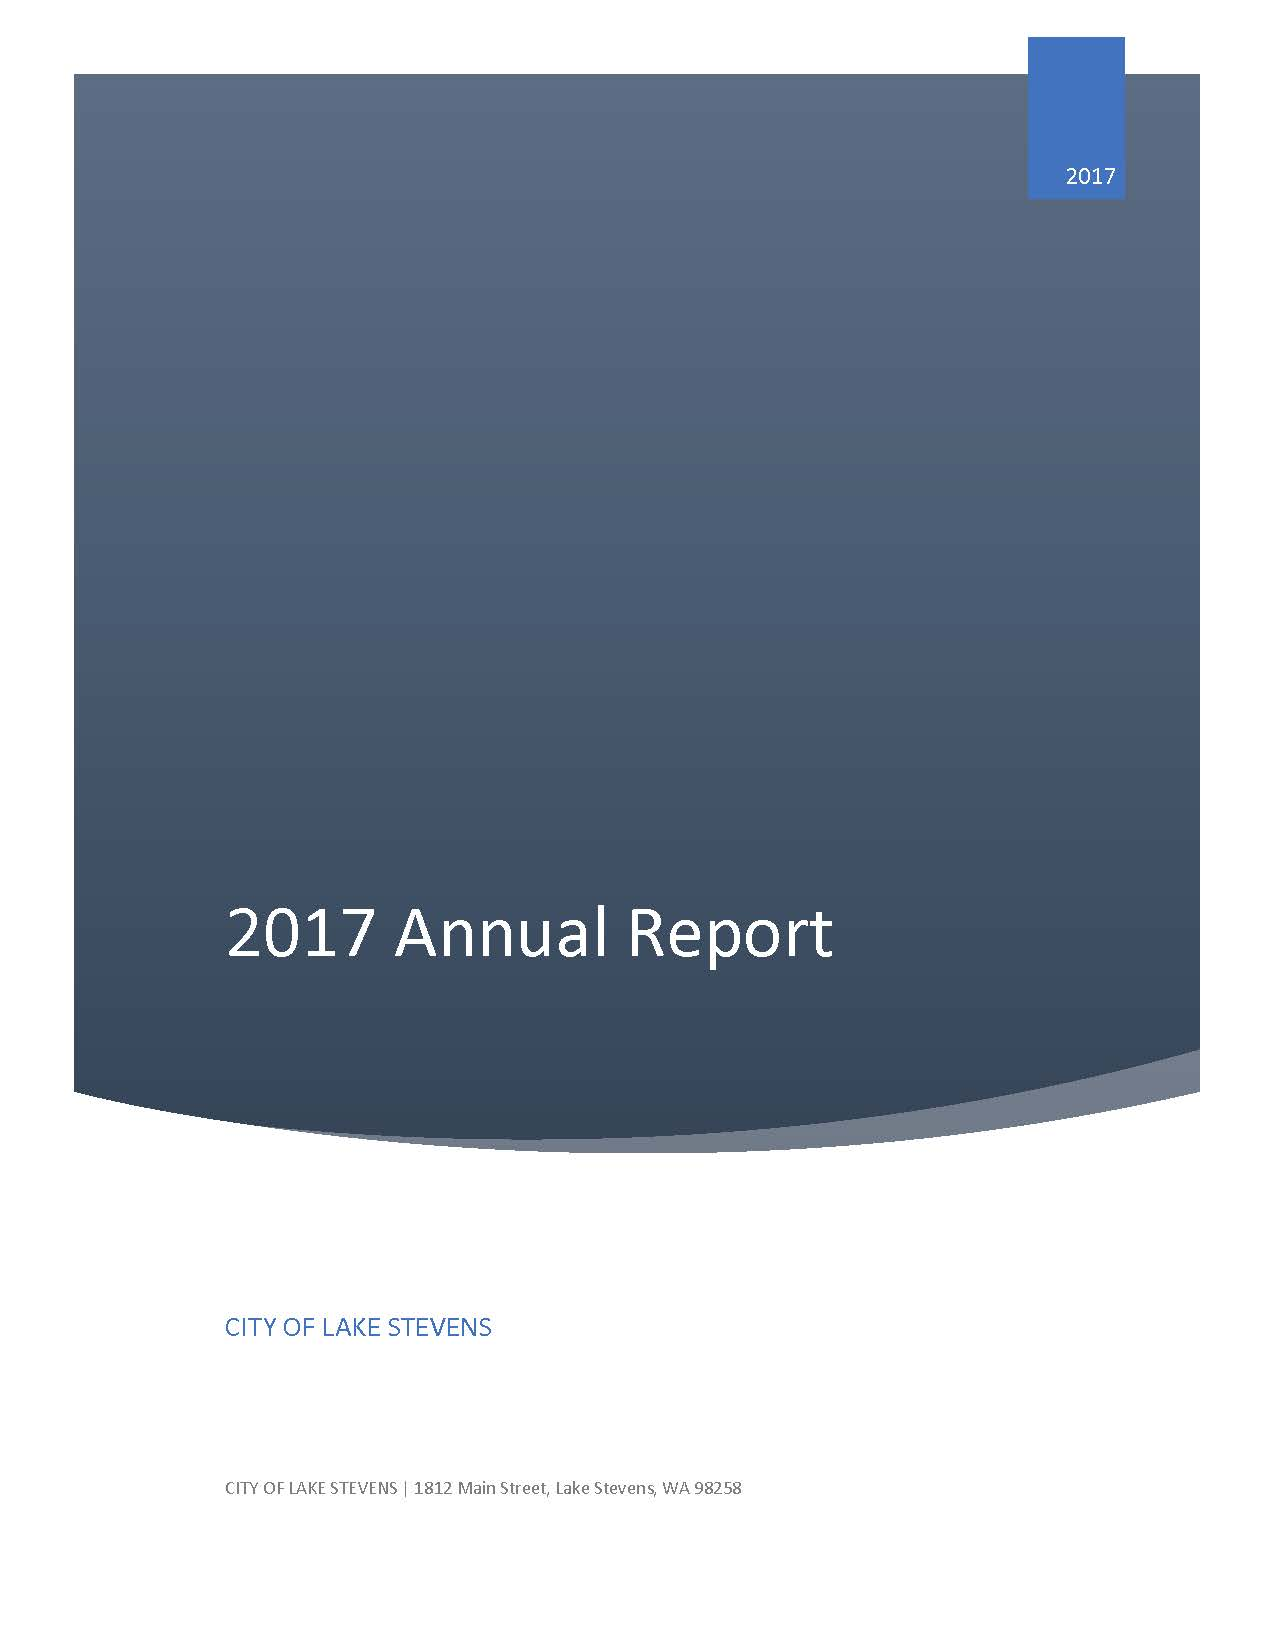 Annual Report pic2